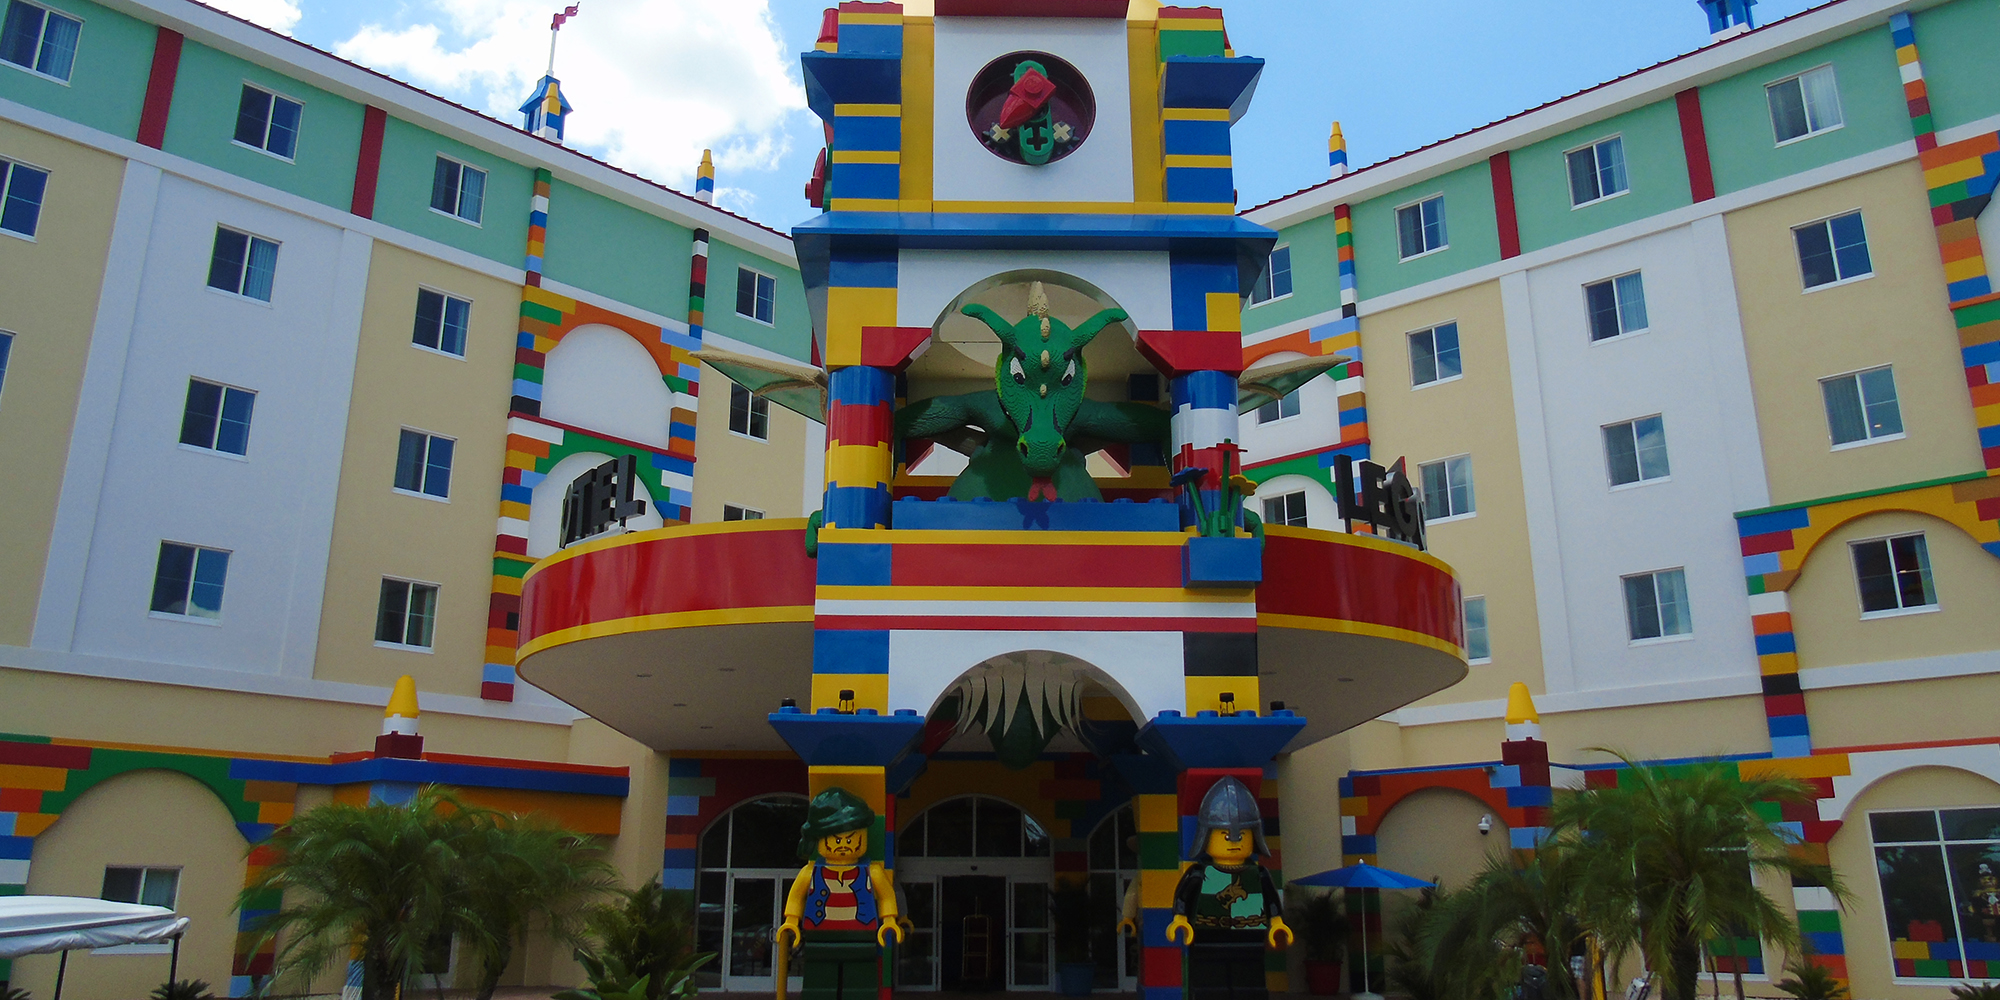 Lego Hotel front entry1